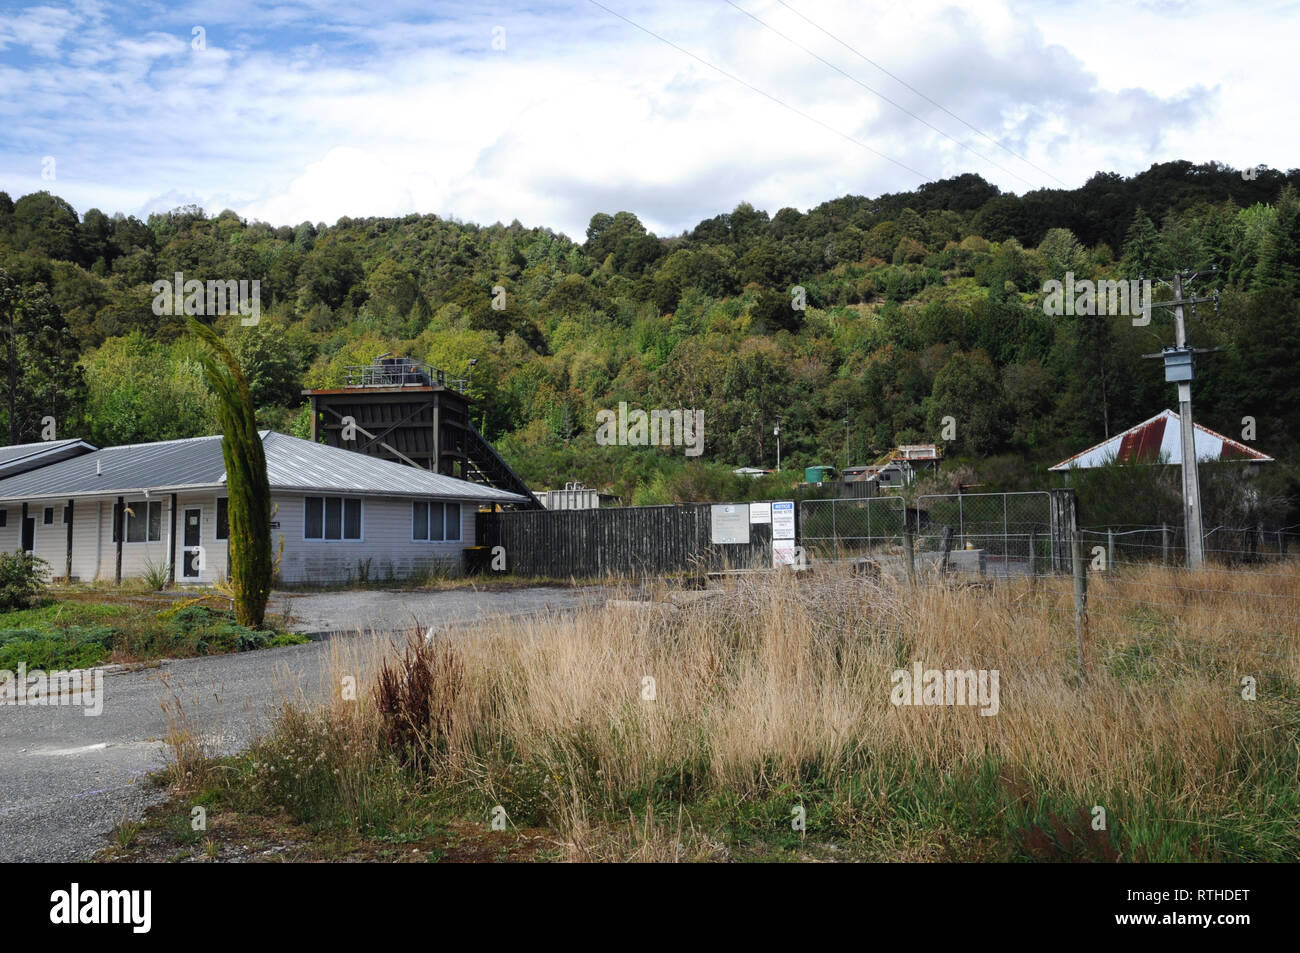 Site of the Terrace Coal Mine at the West Coast town of Reefton on New Zealands South Island. The mine is owned by Crusader Coal. - Stock Image